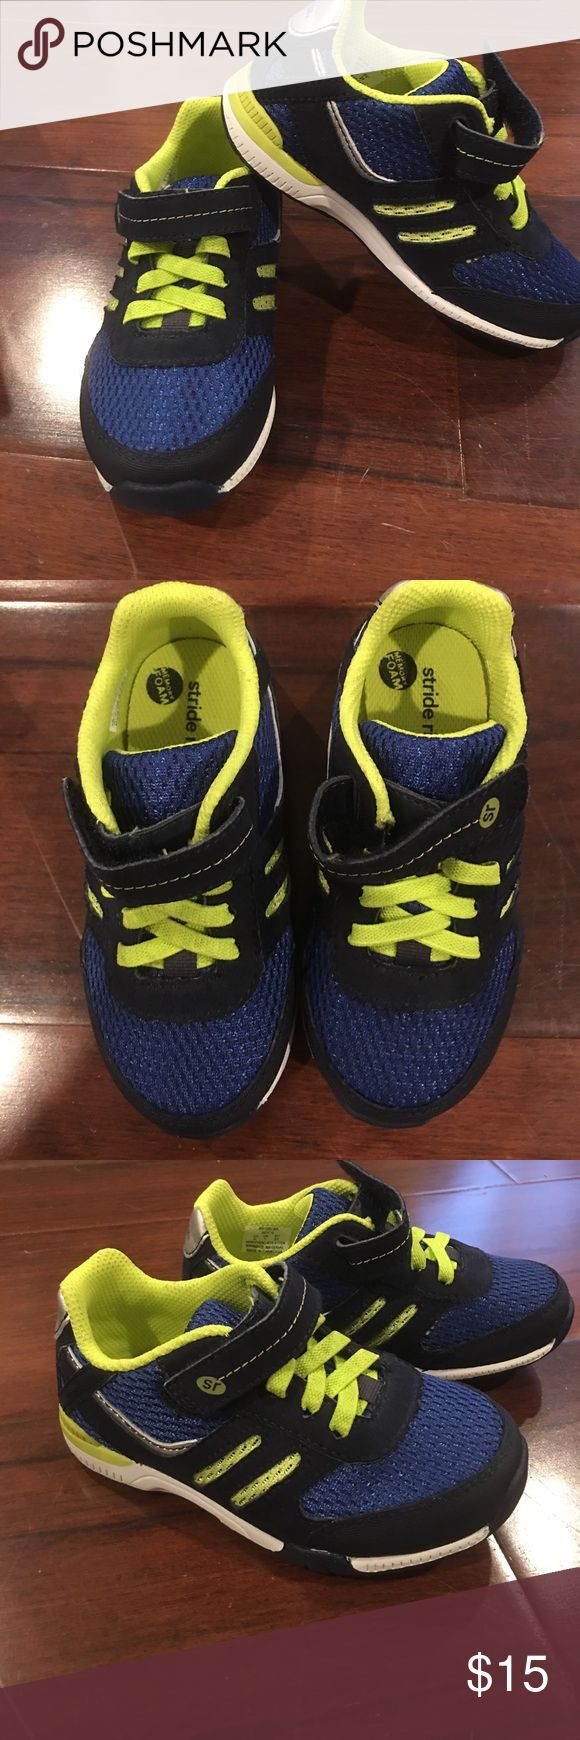 Stride Rite Navy and Neon Yellow Shoes Size 8 Stride Rite Navy and Neon Yellow Shoes Size 8. Brand New and Never Been Worn. Stride Rite Shoes Sneakers